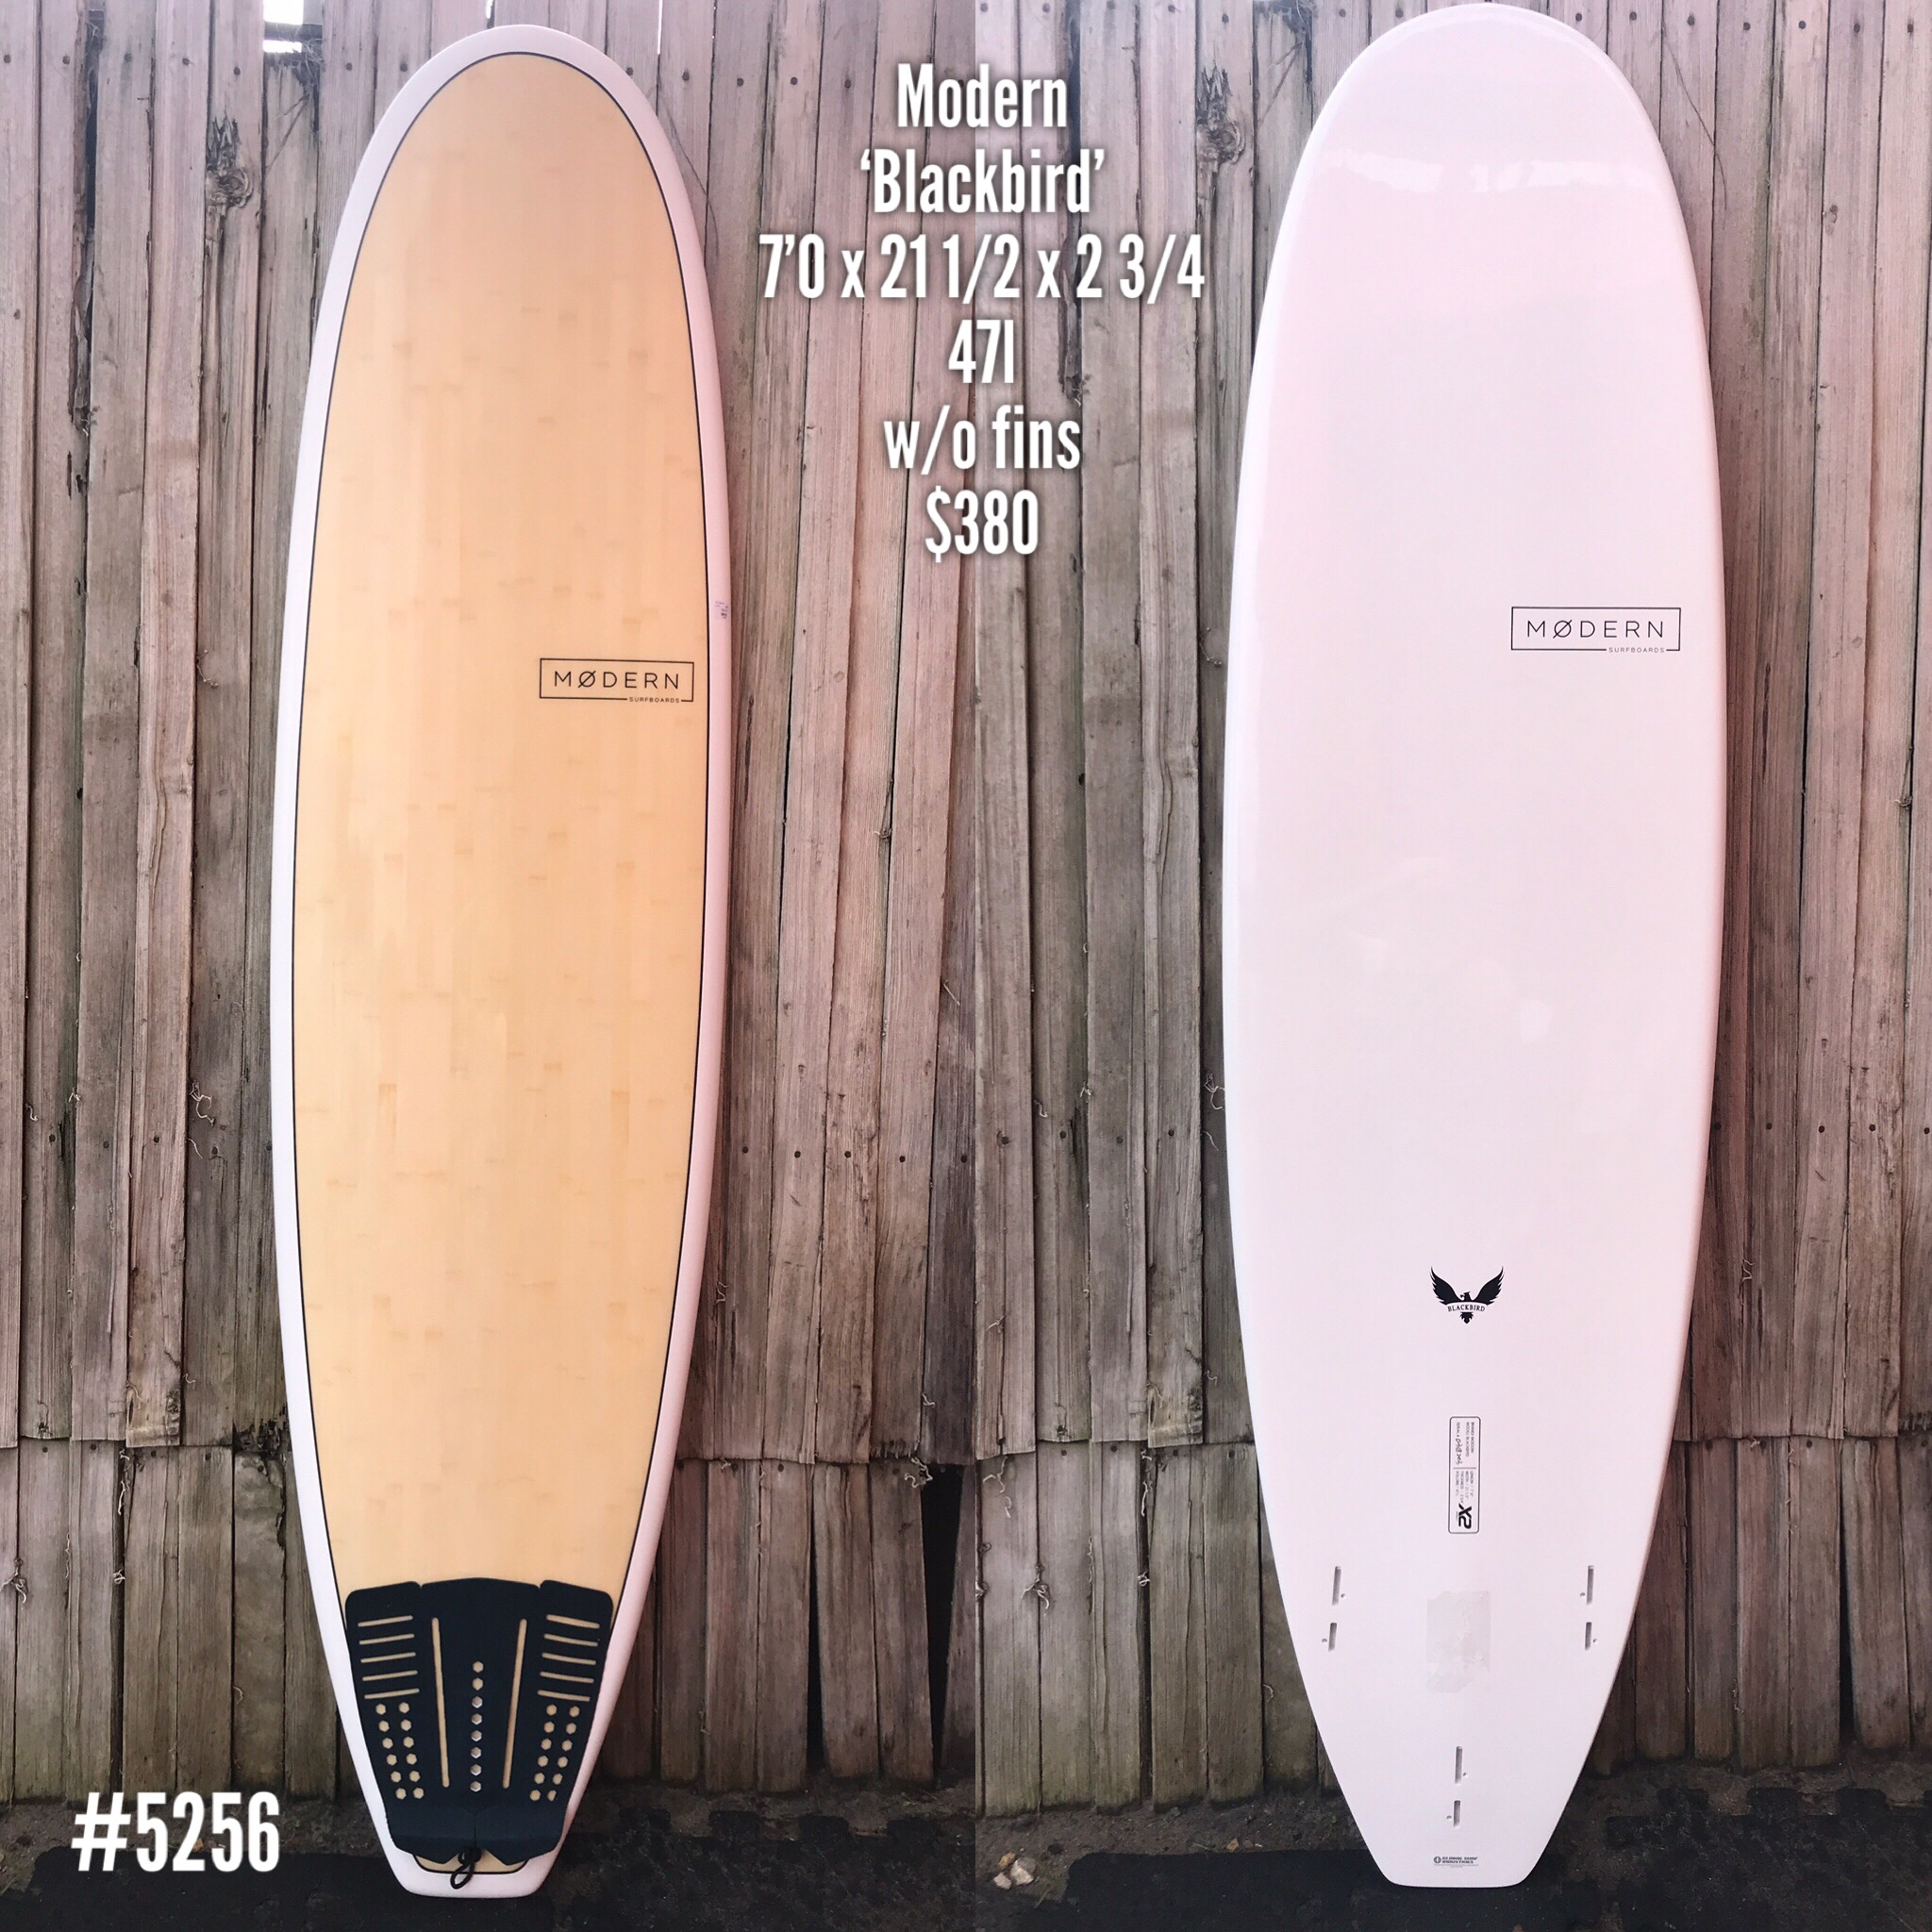 This great all-rounder 7'0 fun board is the perfect addition to your small wave quiver, or for anyone looking to downsize or get onto their first hard board. Nearly new condition, no dings or repairs and in tough and responsive epoxy construction this one won't sit in the racks for long! Just $380!!!!